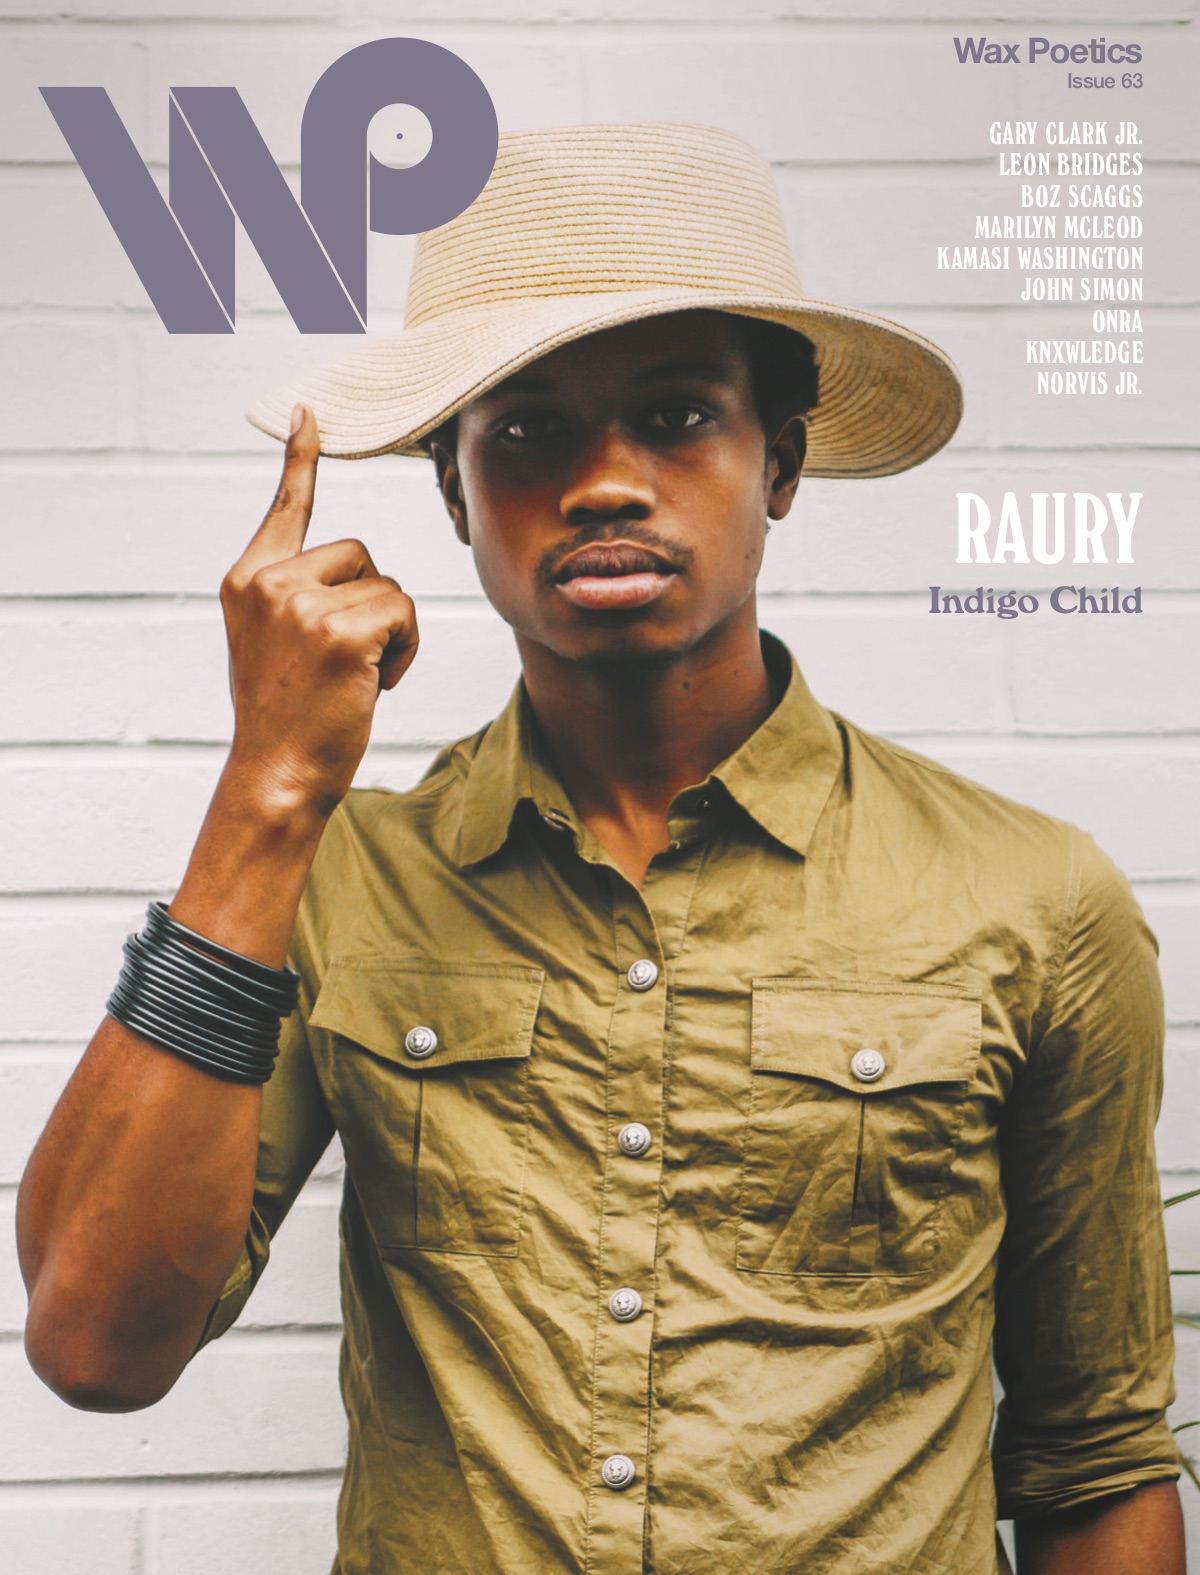 Wax Poetics 63 Raury.jpg